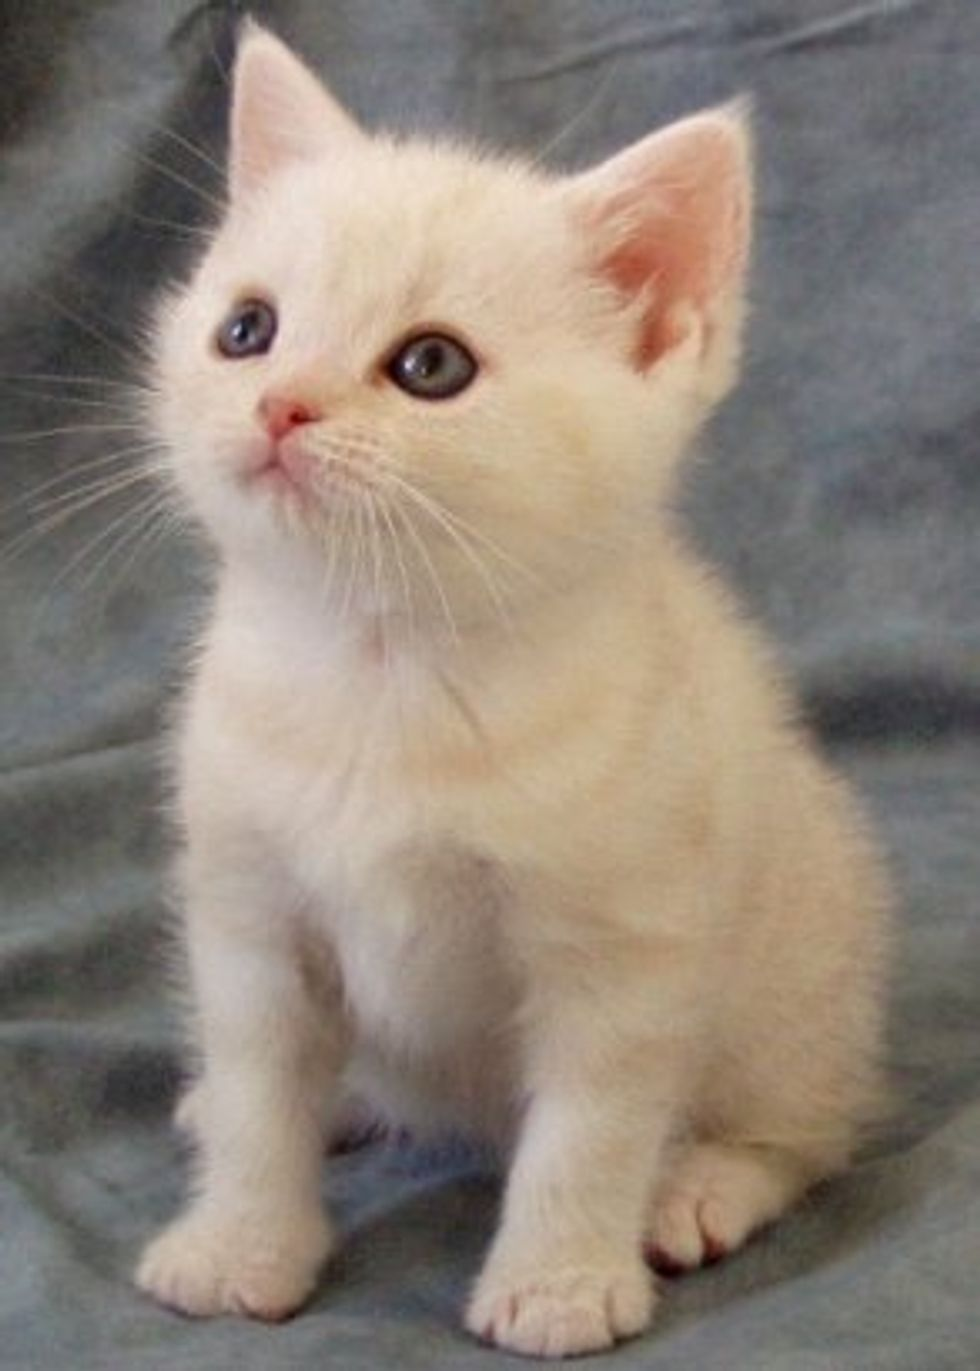 Tips on Recusing Kittens and Care for Orphan Kittens